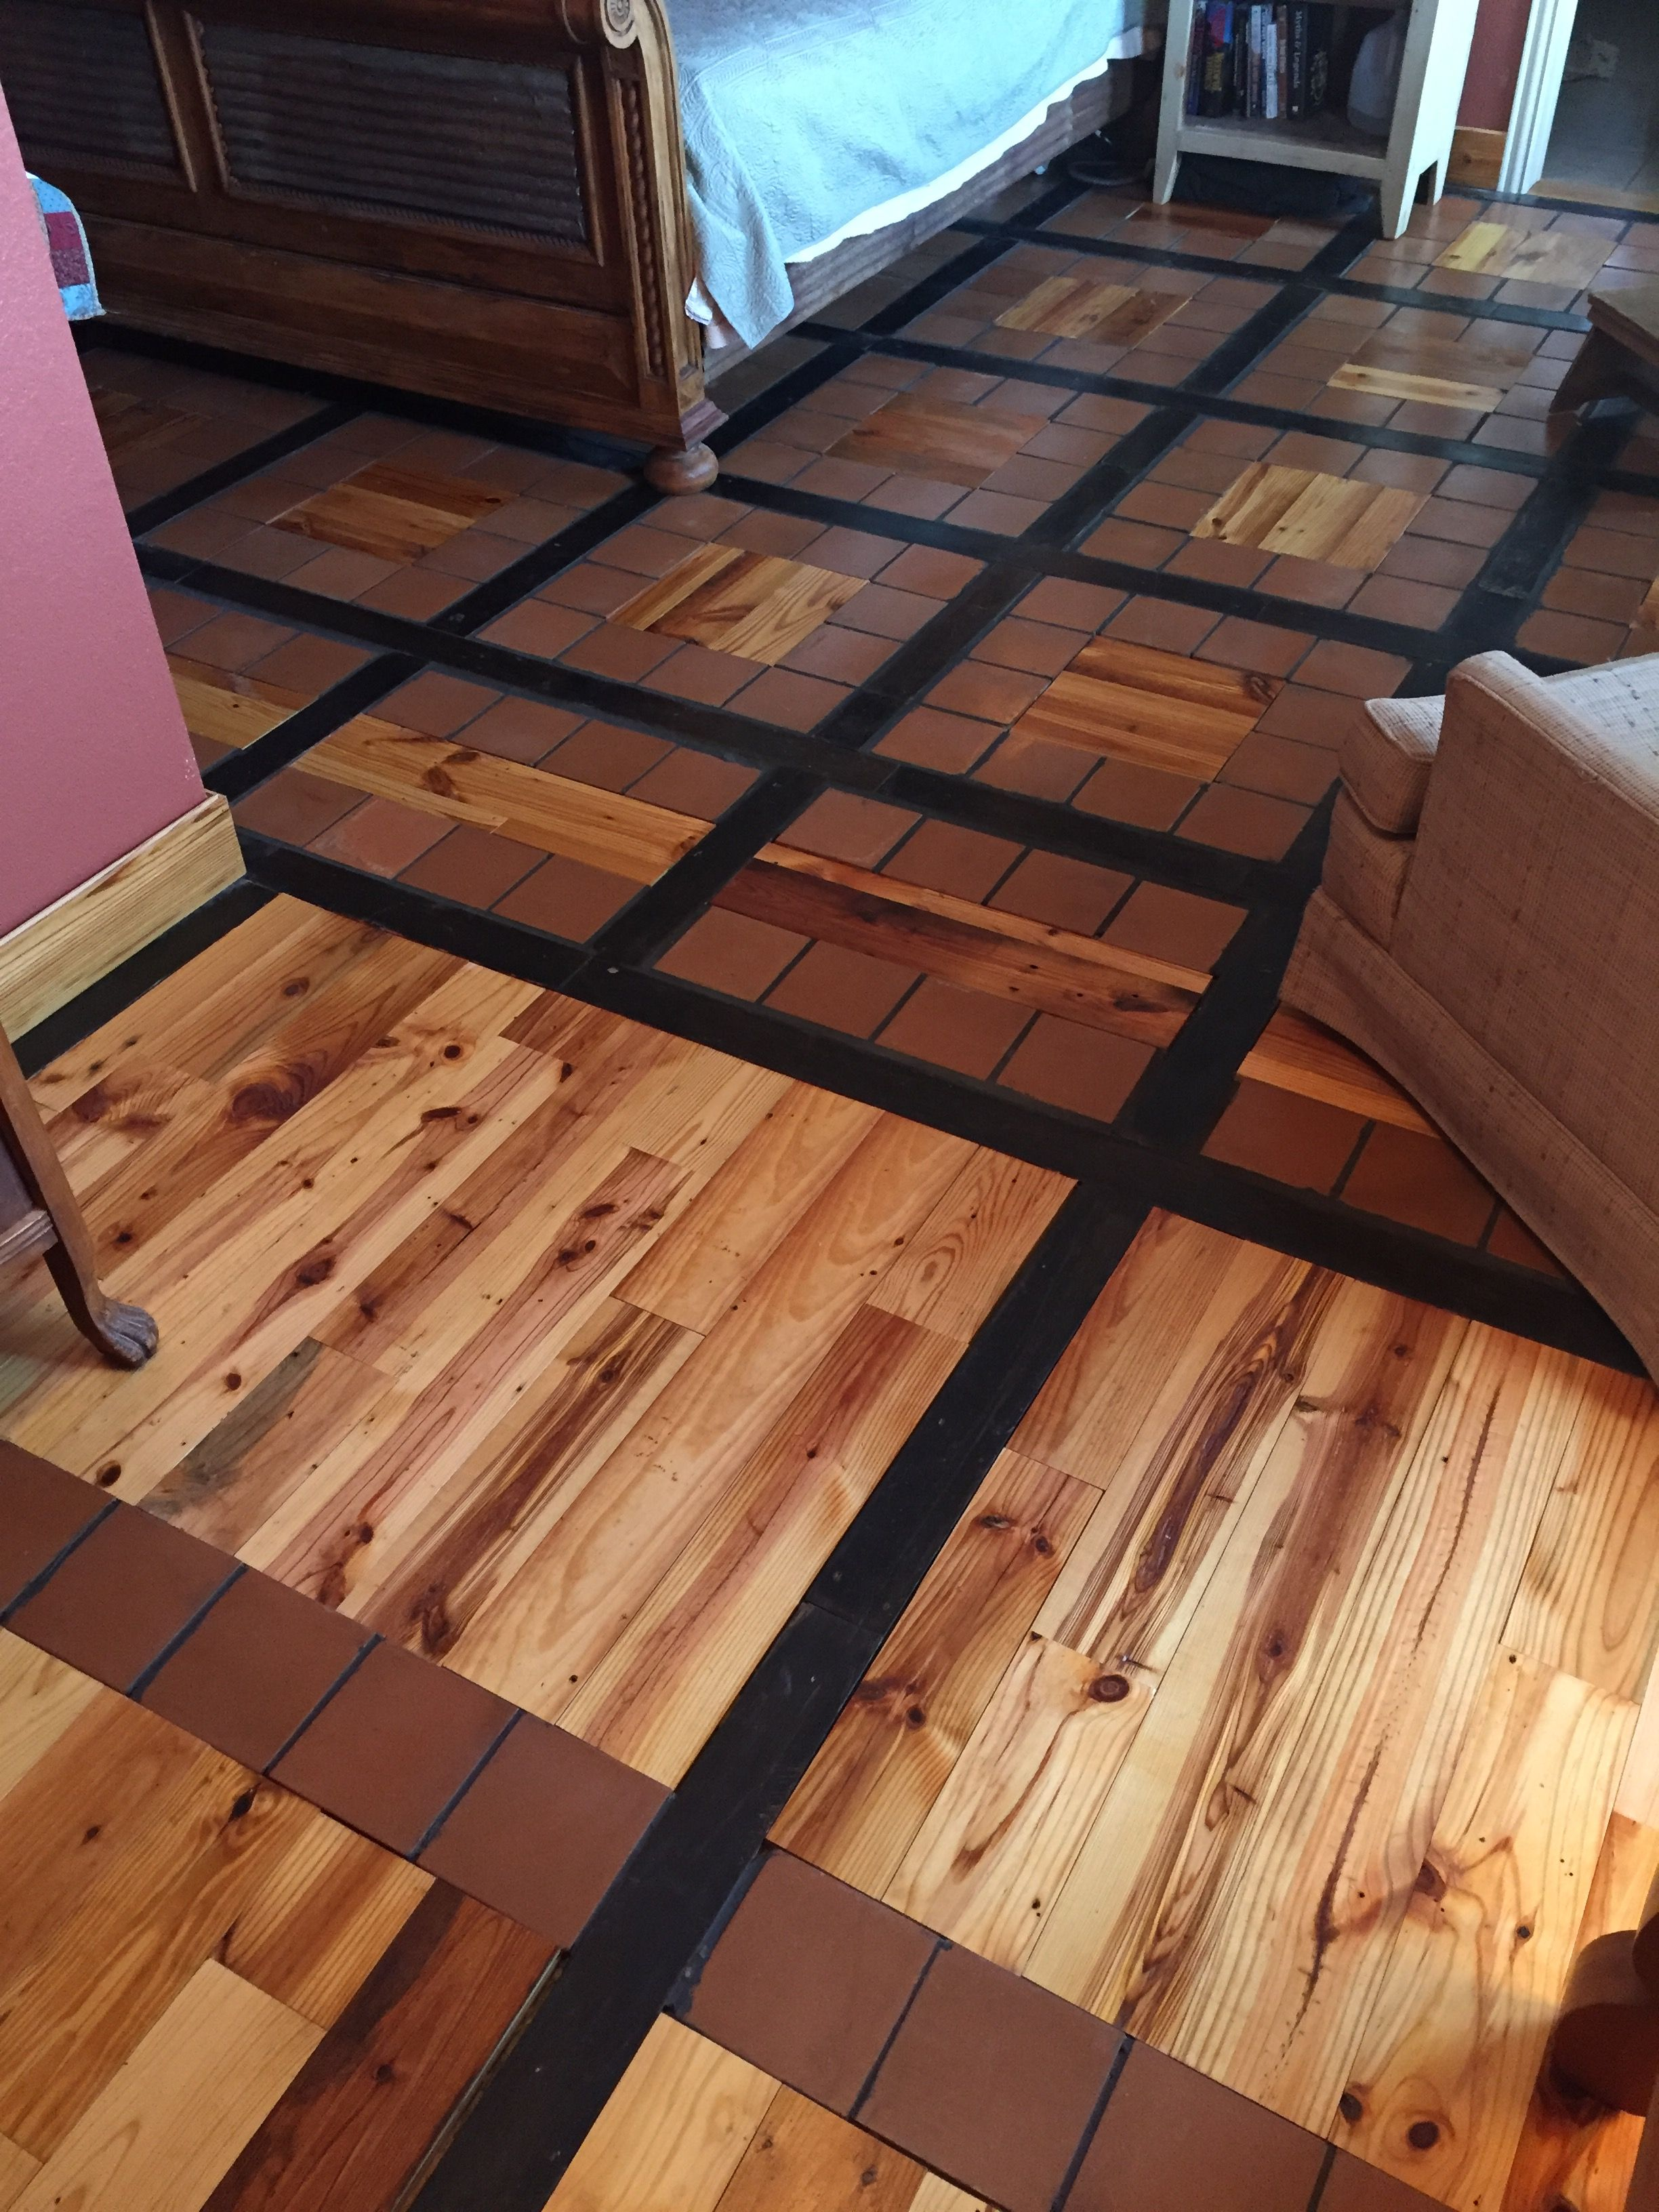 Our new master bedroom floor we did ourselves. Reclaimed pine tongue ...